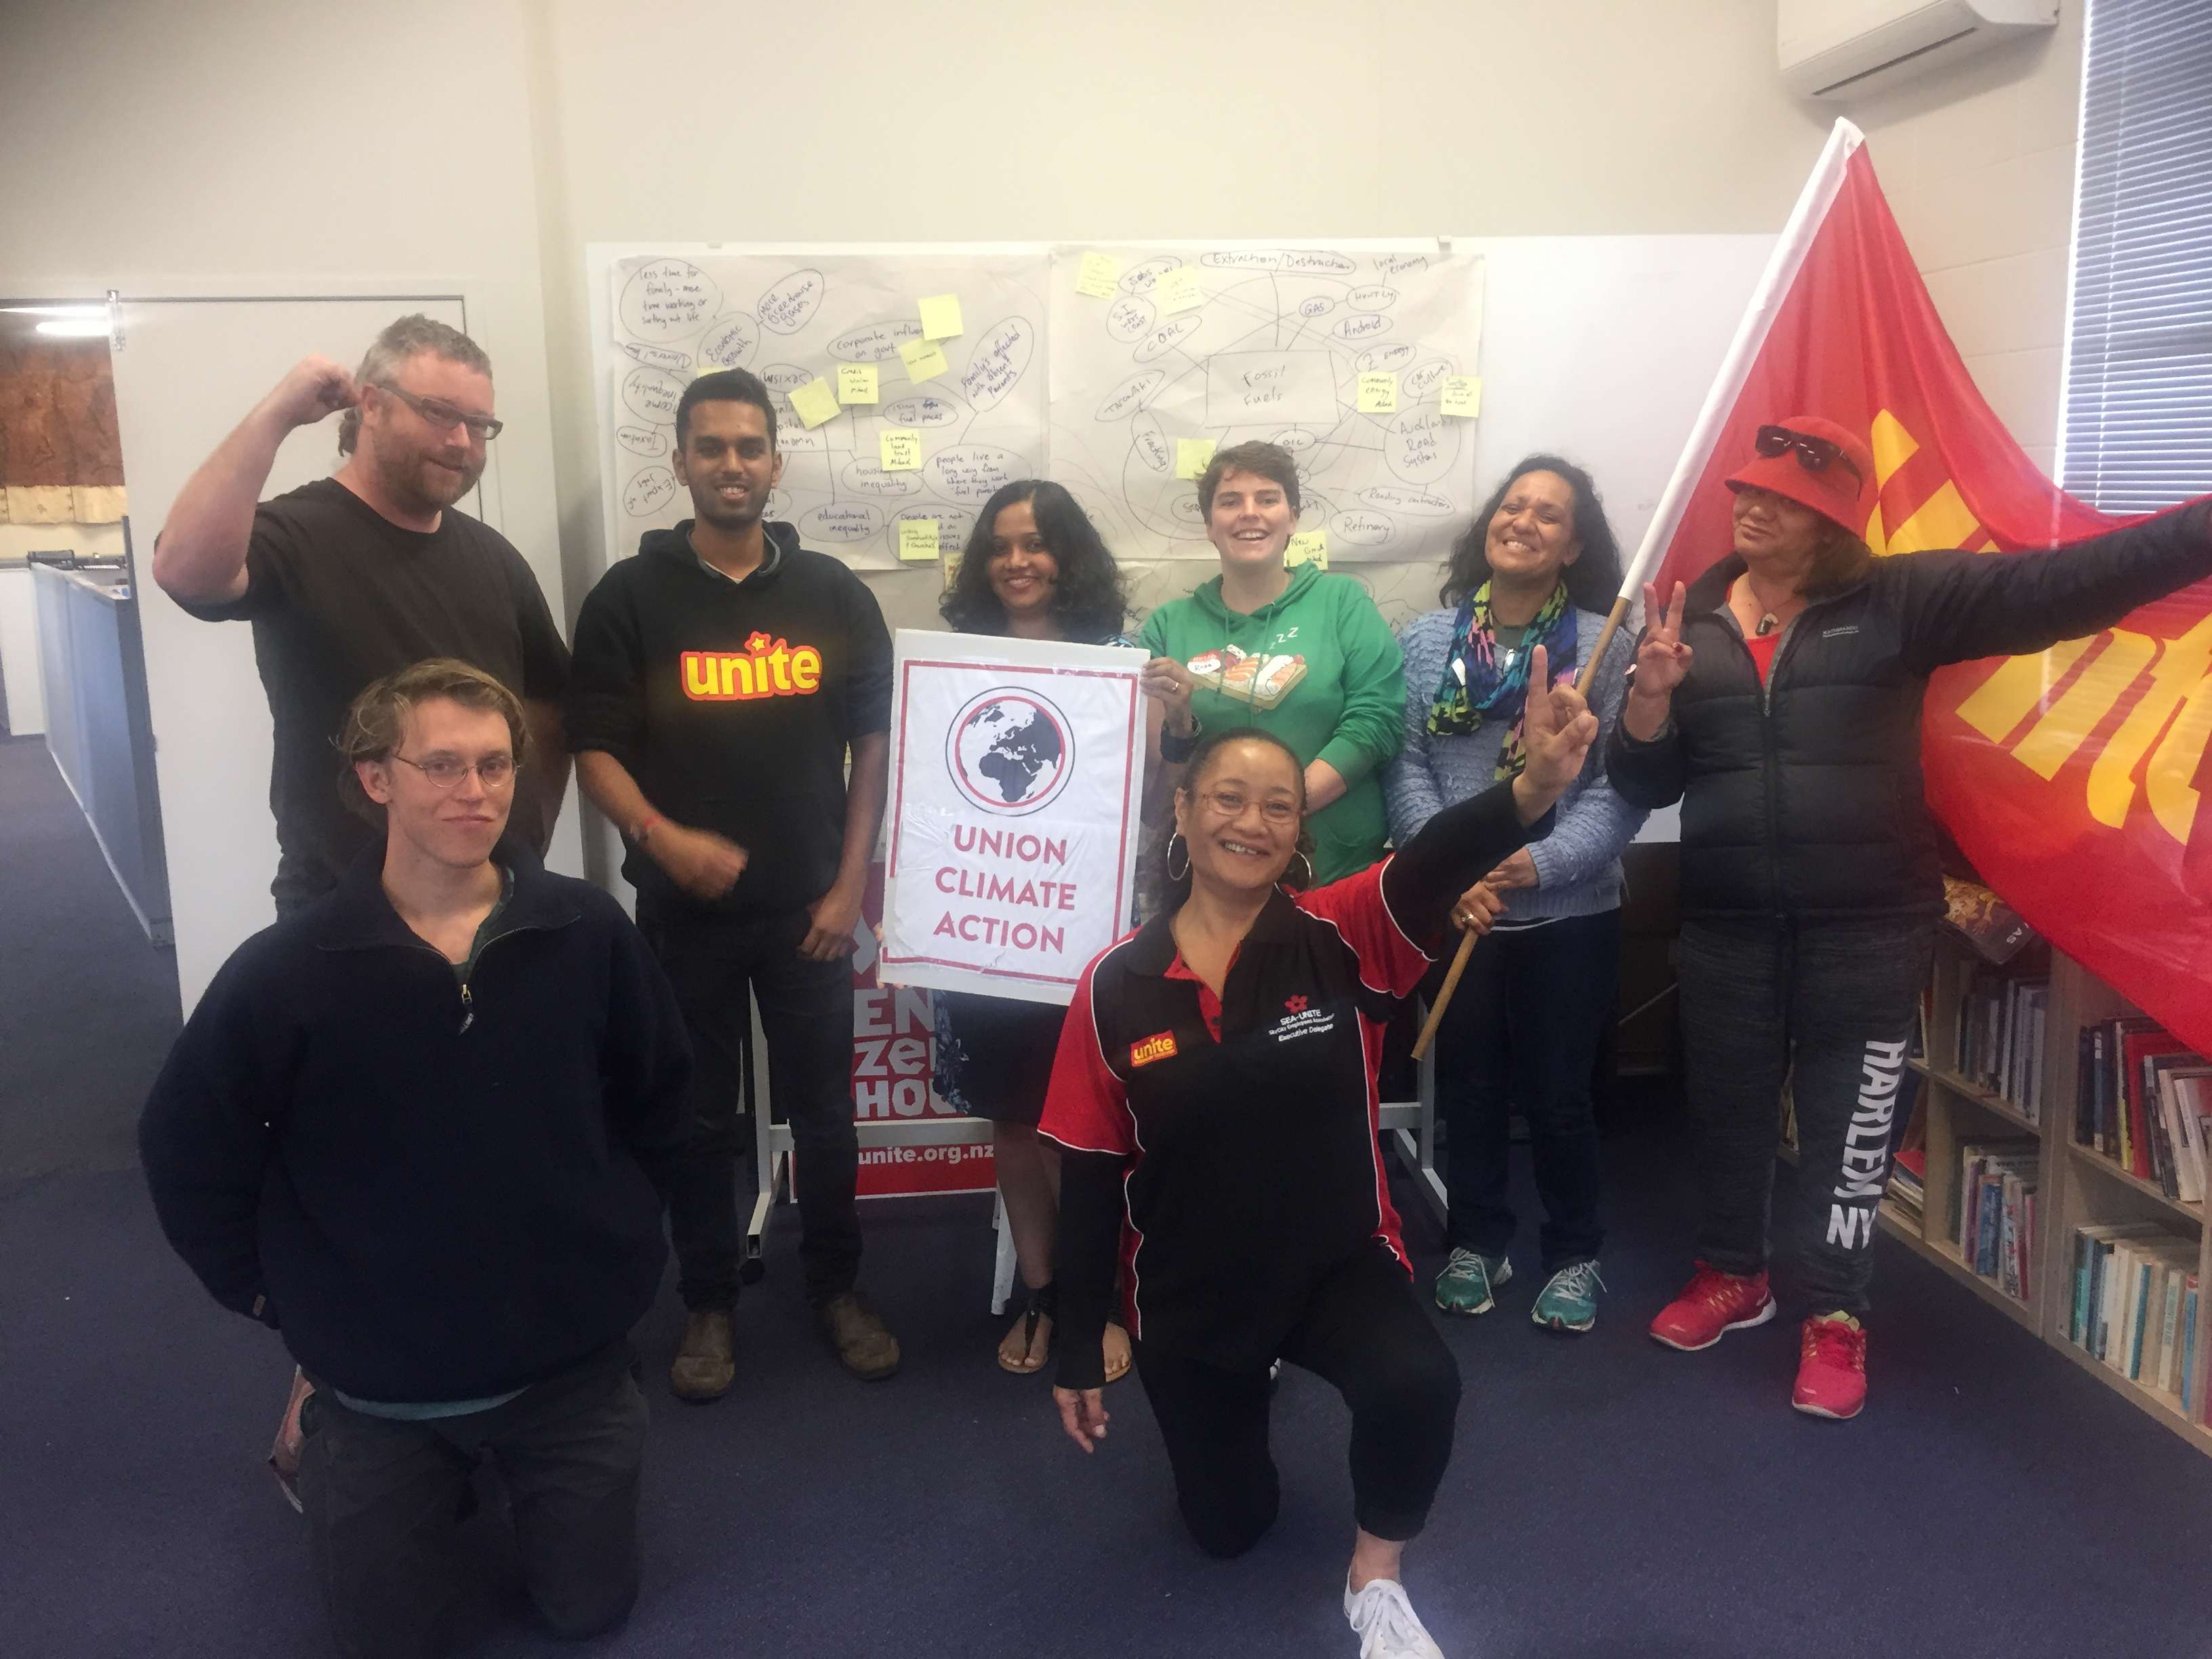 Unite Union members complete union's first climate change workshop